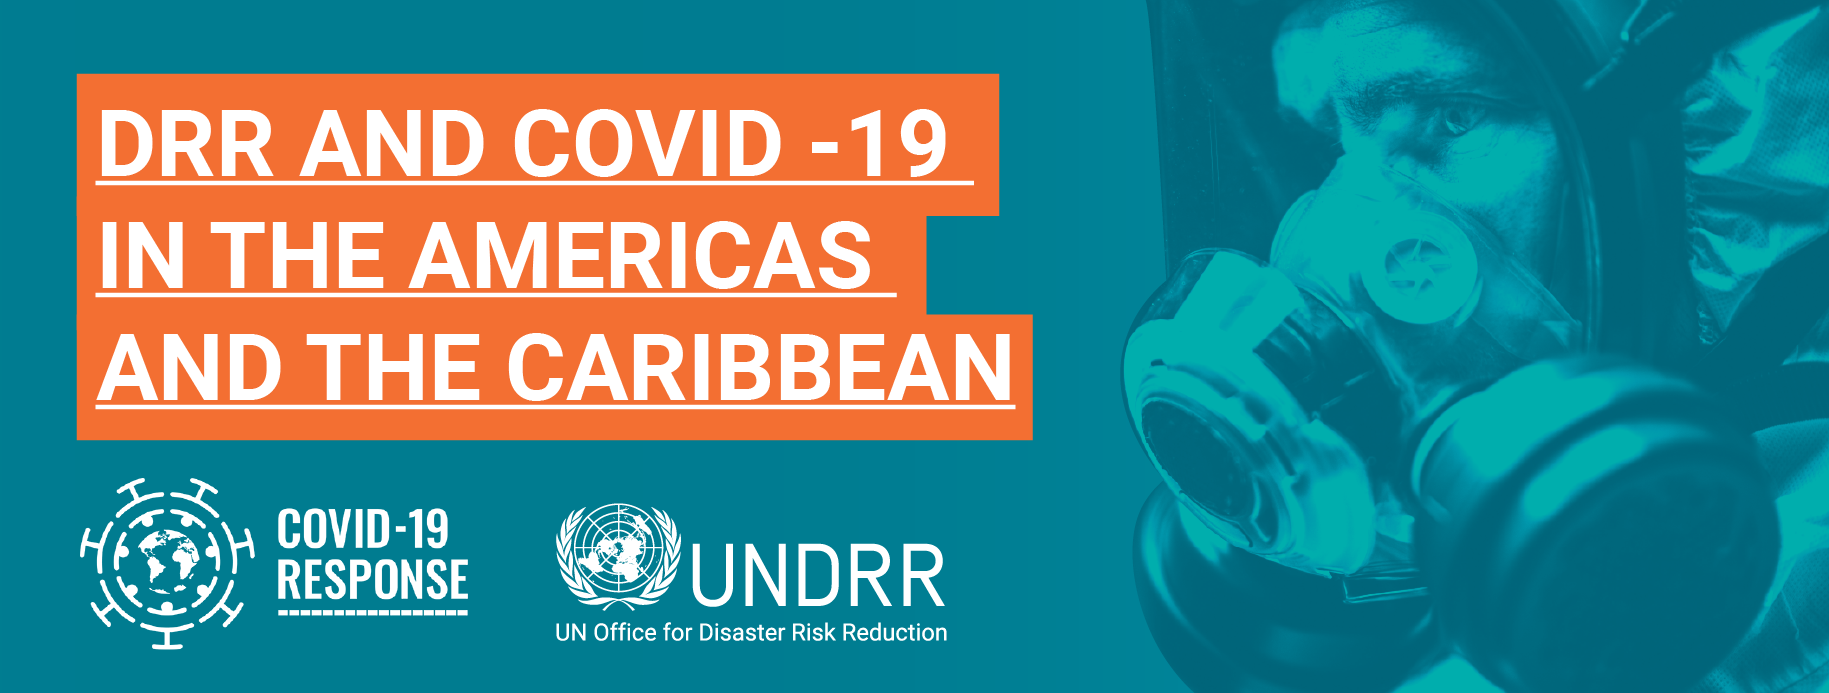 DRR and COVID -19 in the Americas and the Caribbean